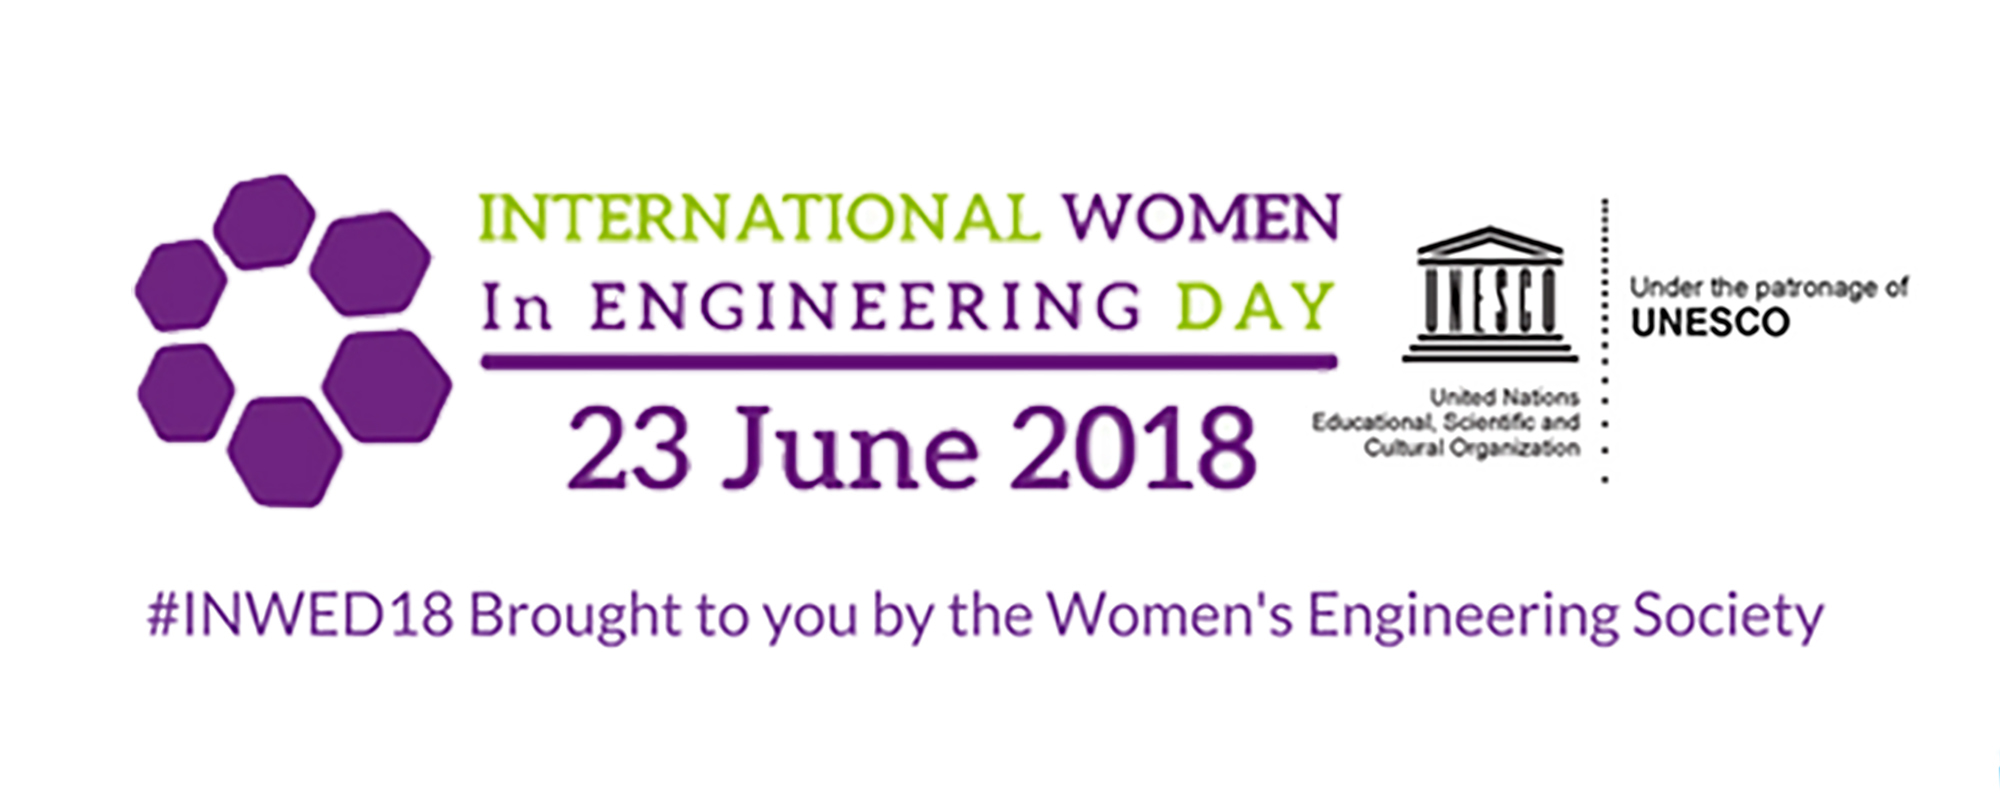 Broadcast engineering recruitment specialists Christy Media Solutions supports International Women in Engineering Day 2018. Find out how you can join in.